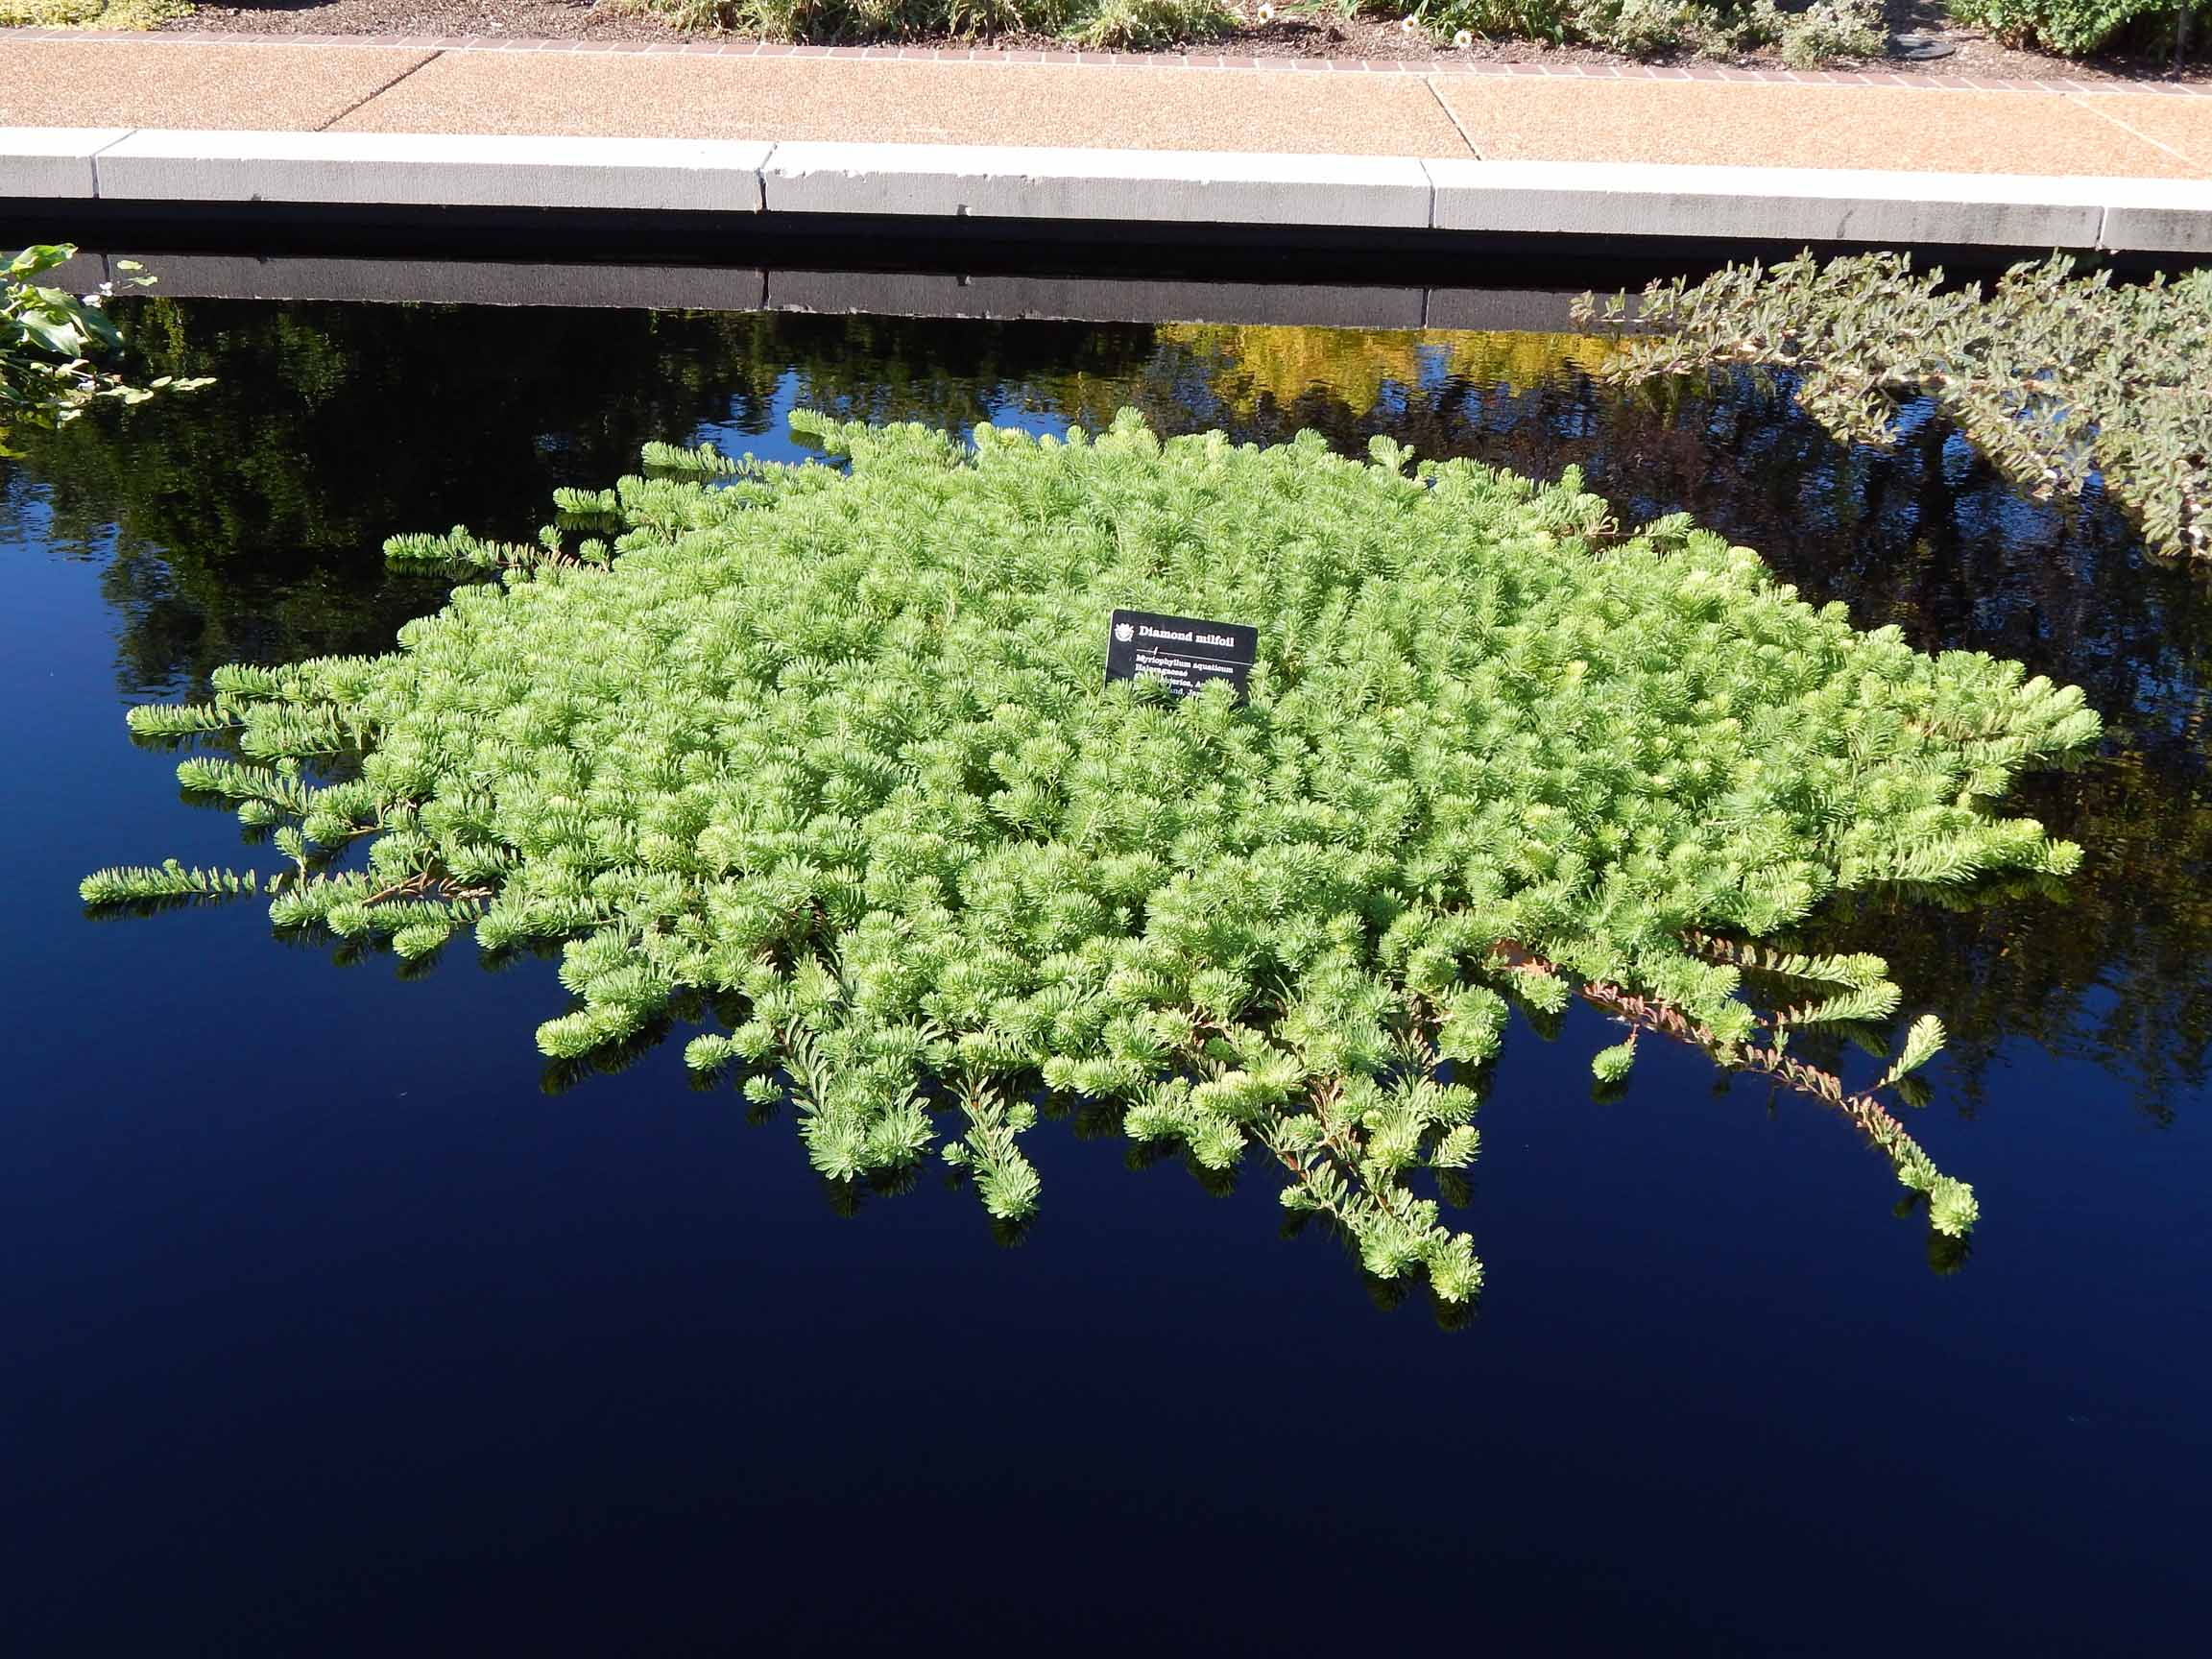 Aquatic milfoil